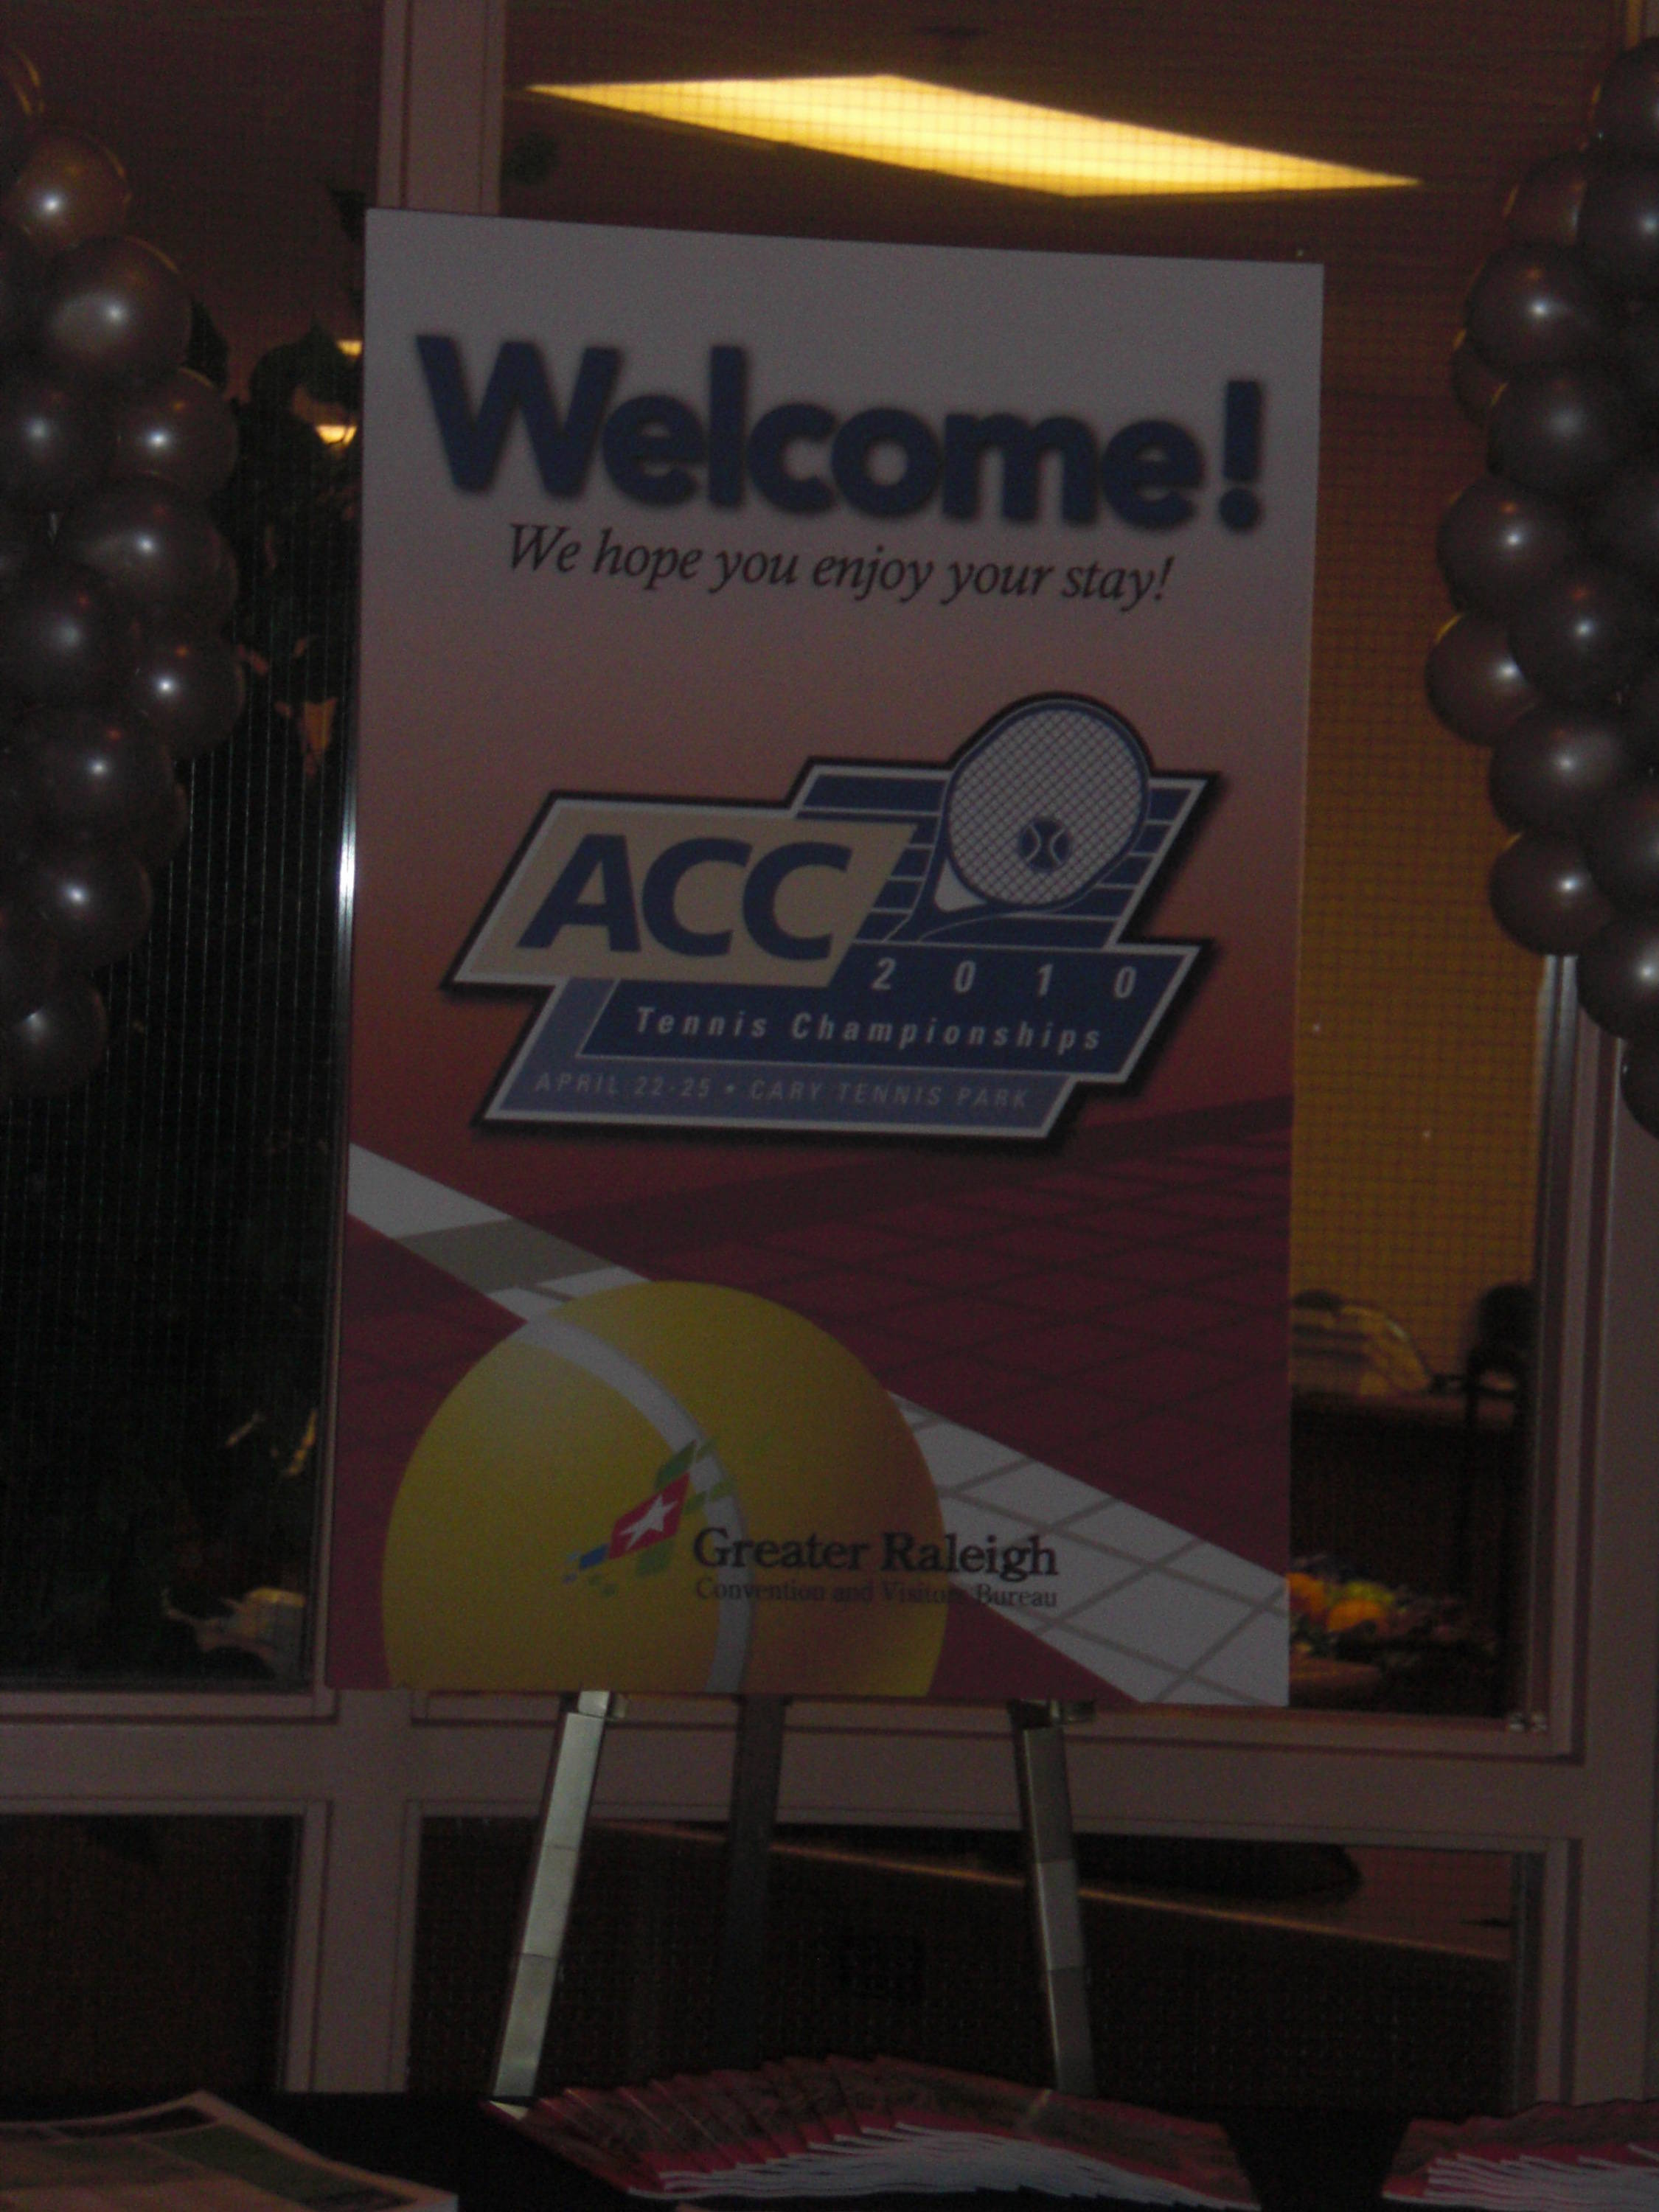 ACC Championships Practice